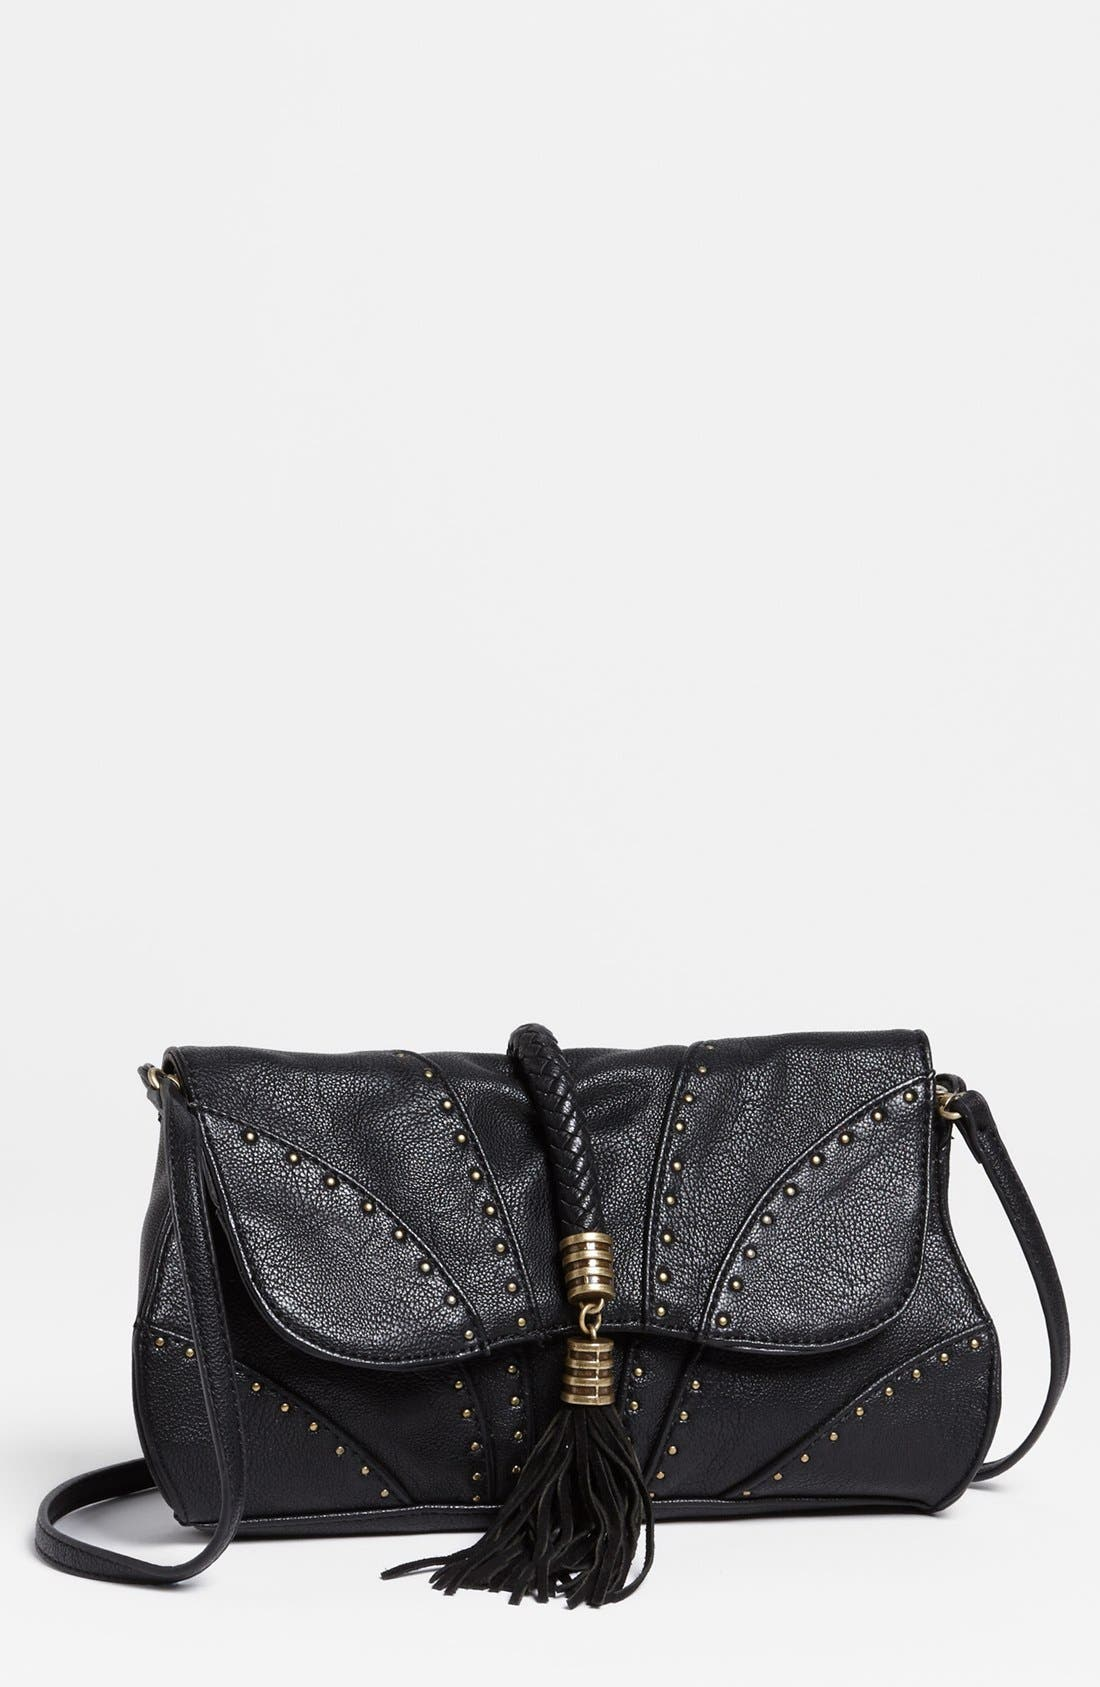 Alternate Image 1 Selected - Jessica Simpson 'Kenya' Faux Leather Clutch